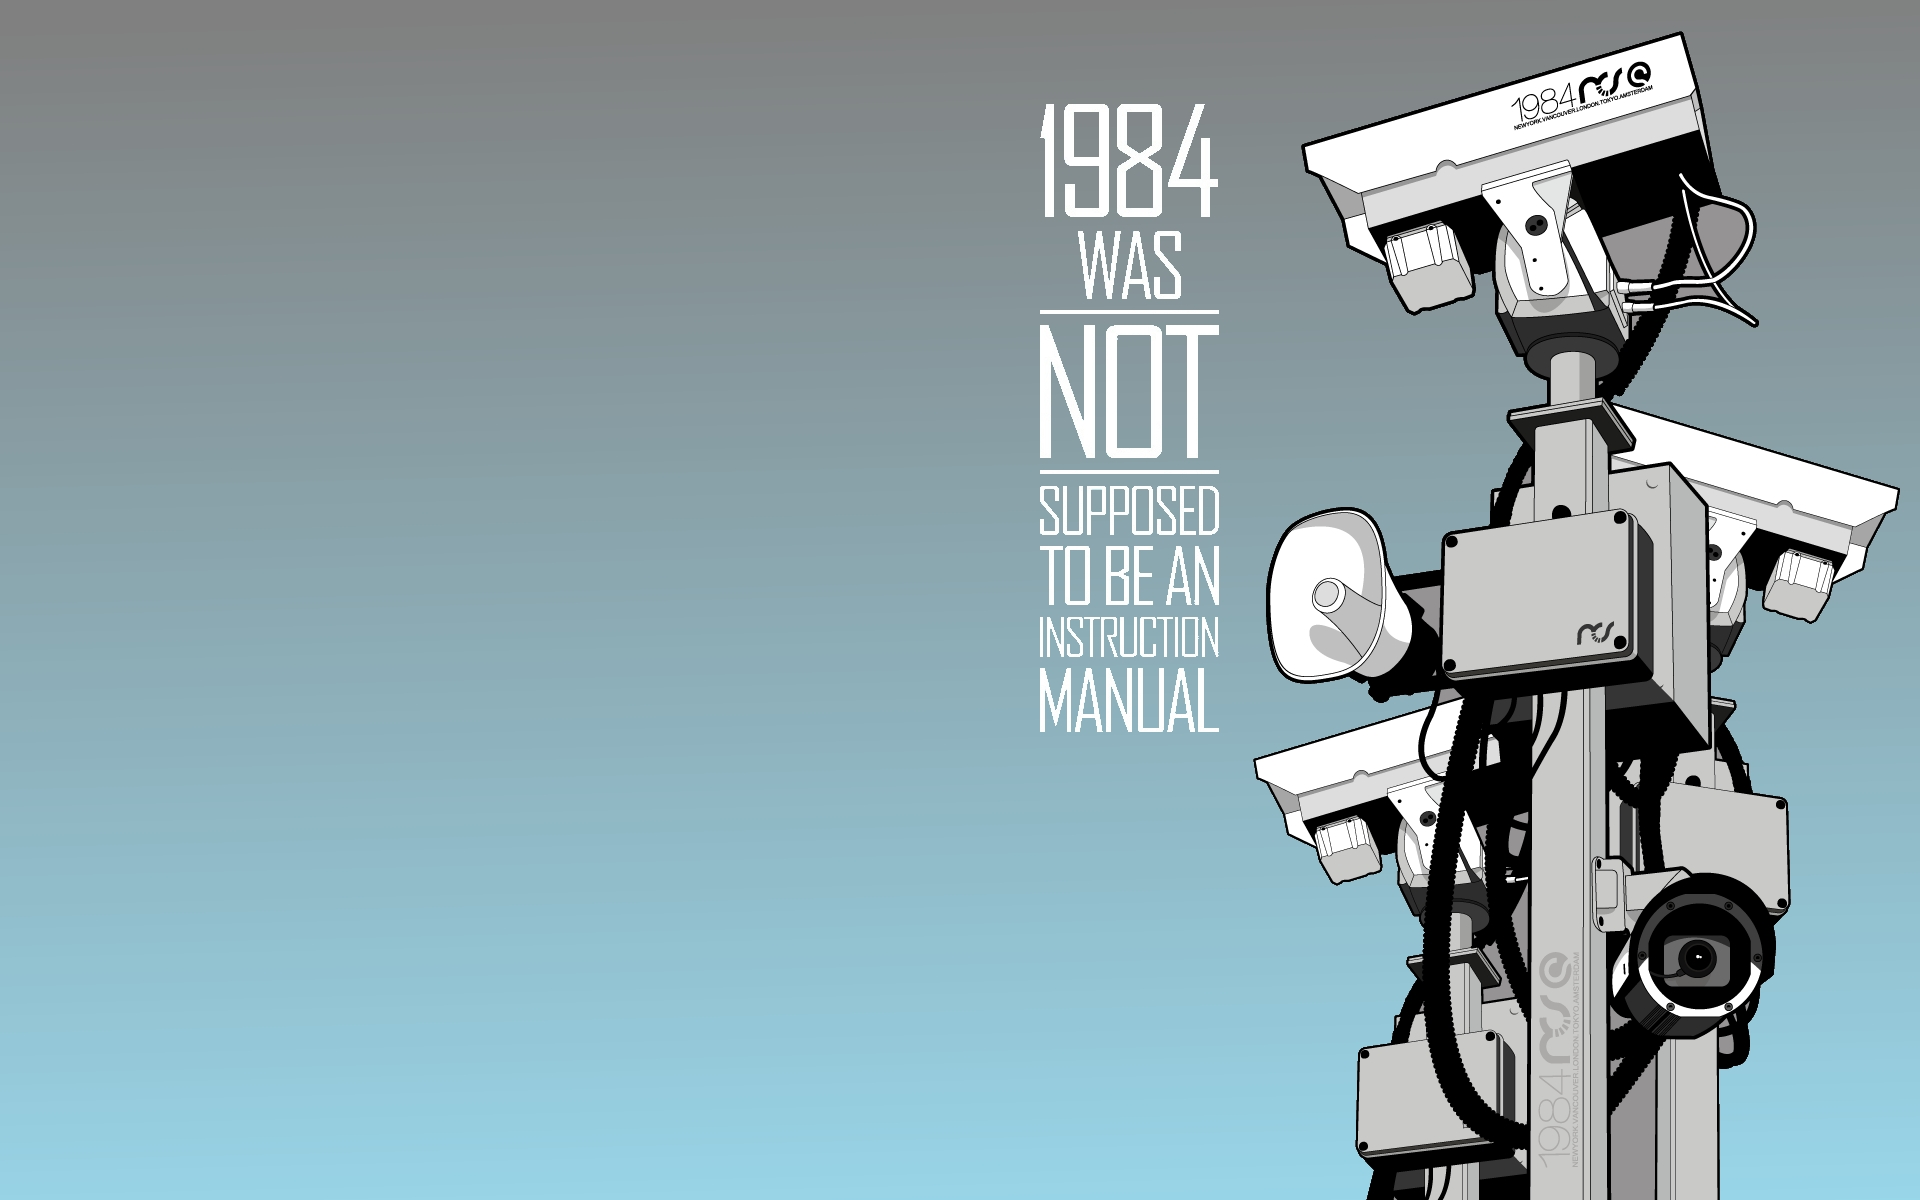 1984 Cctv Wallpapers HD Desktop and Mobile Backgrounds 1920x1200